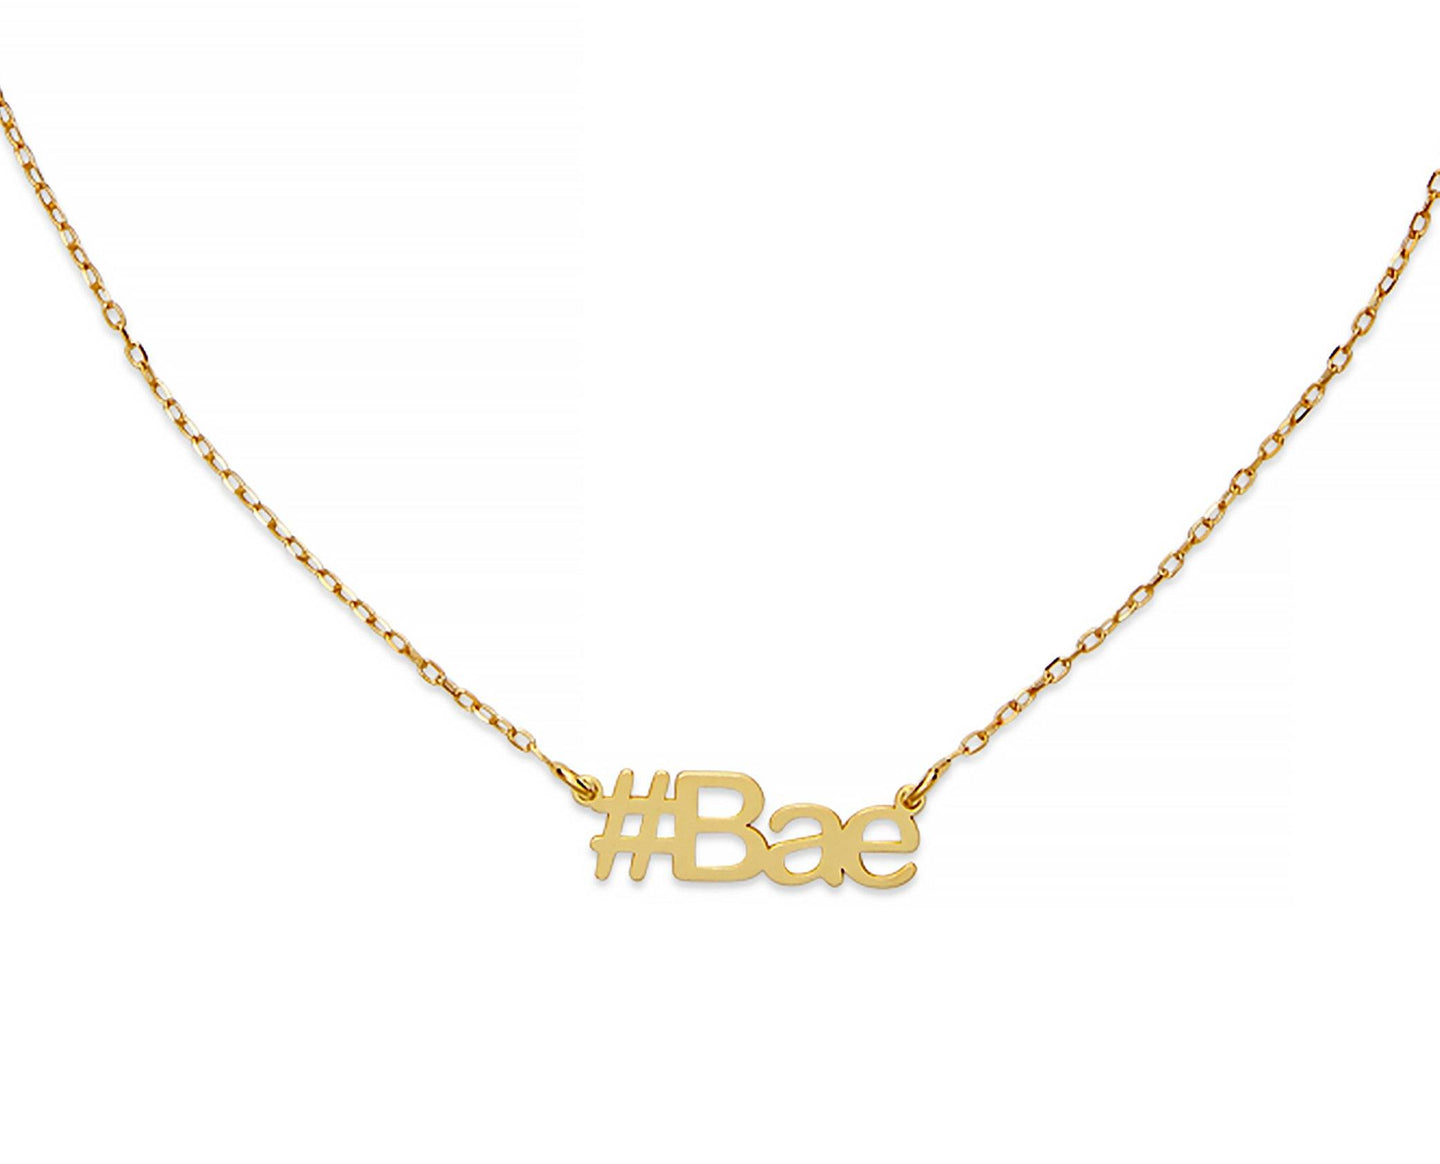 Bae Hashtag Necklace - InclusiveJewelry